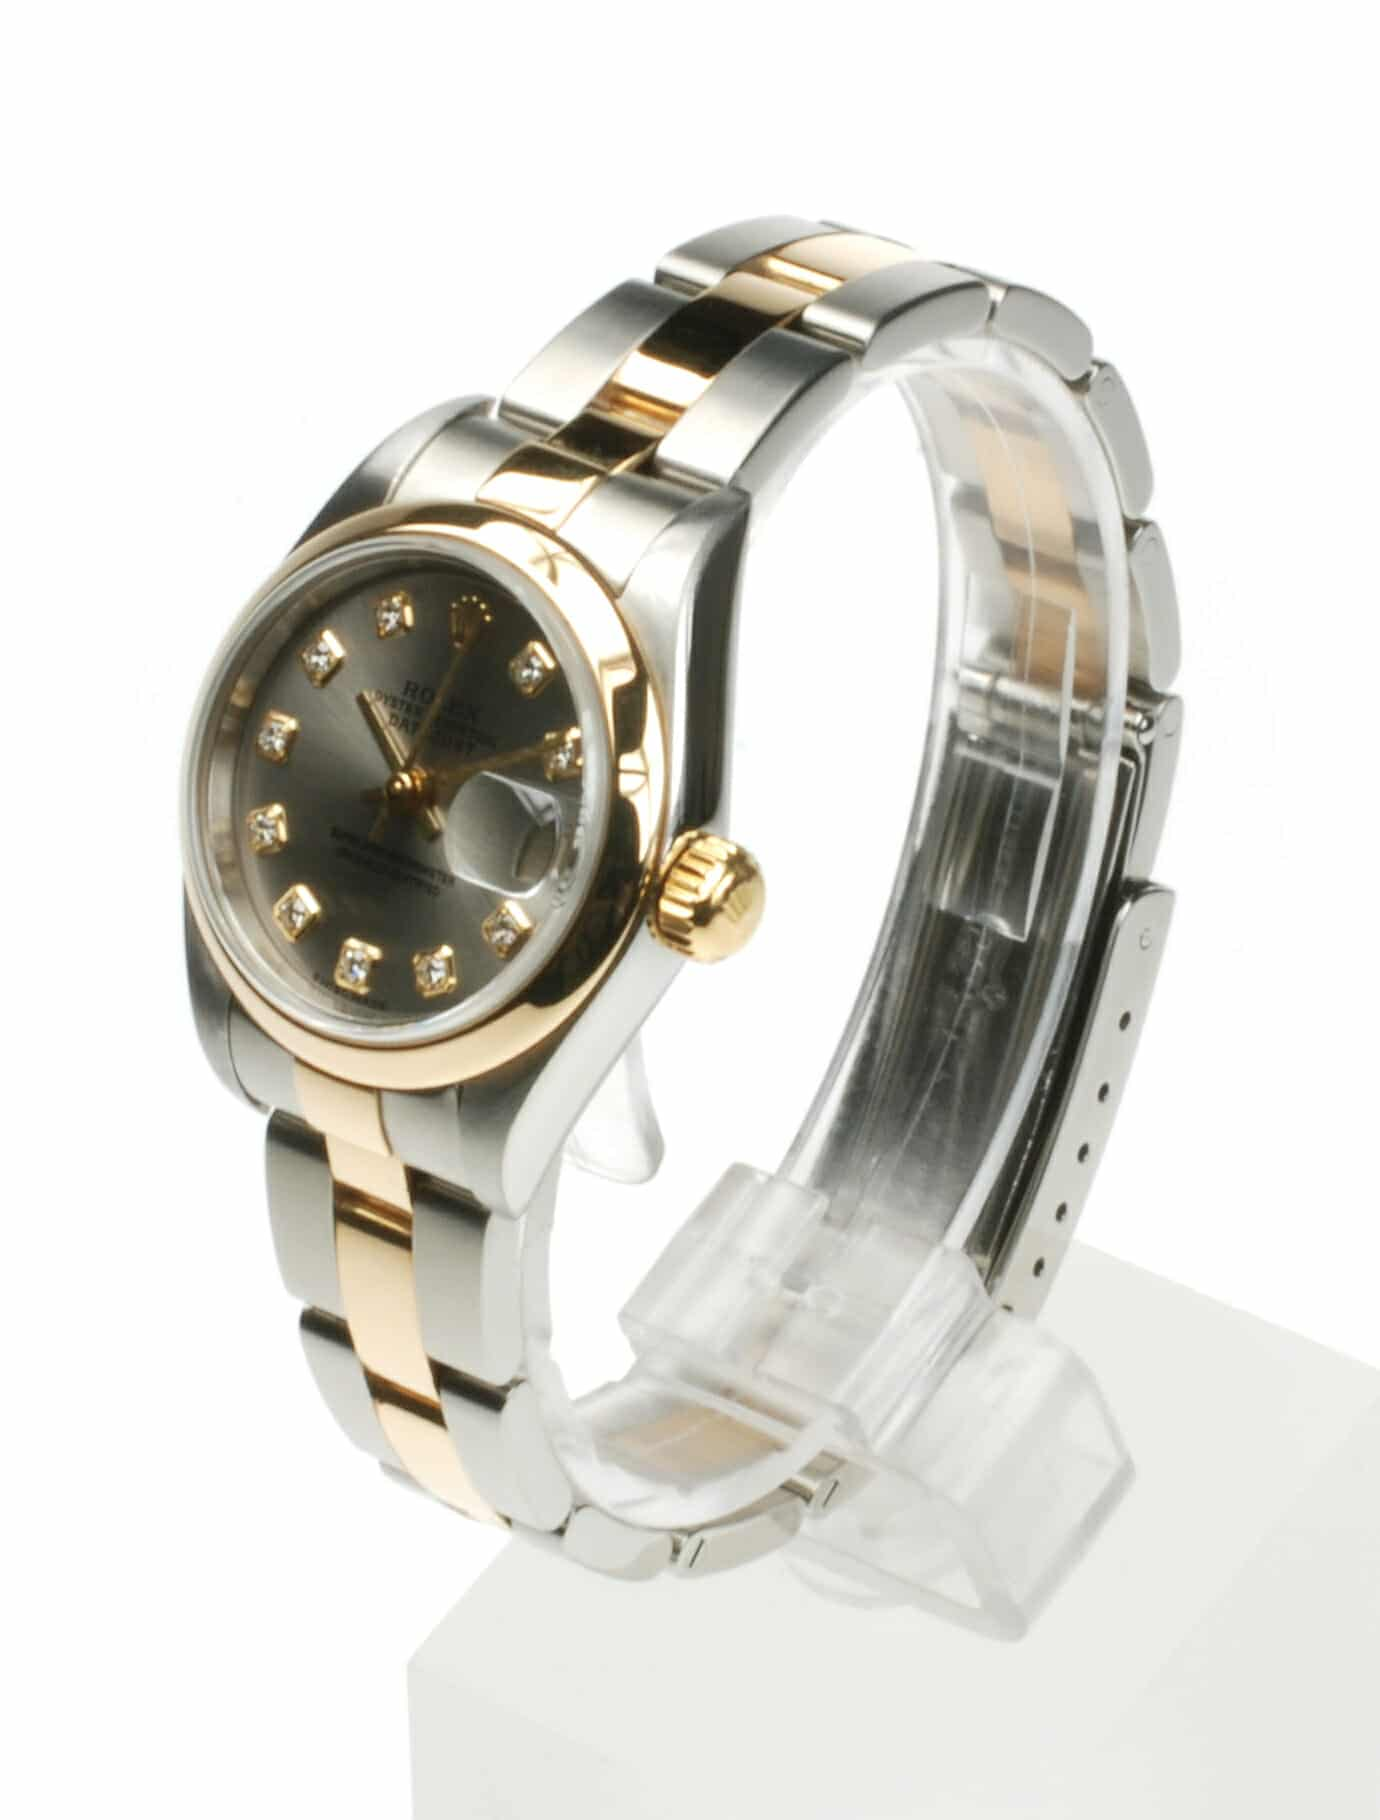 Rolex Datejust 79163 From 2003 Pre-Owned Watch